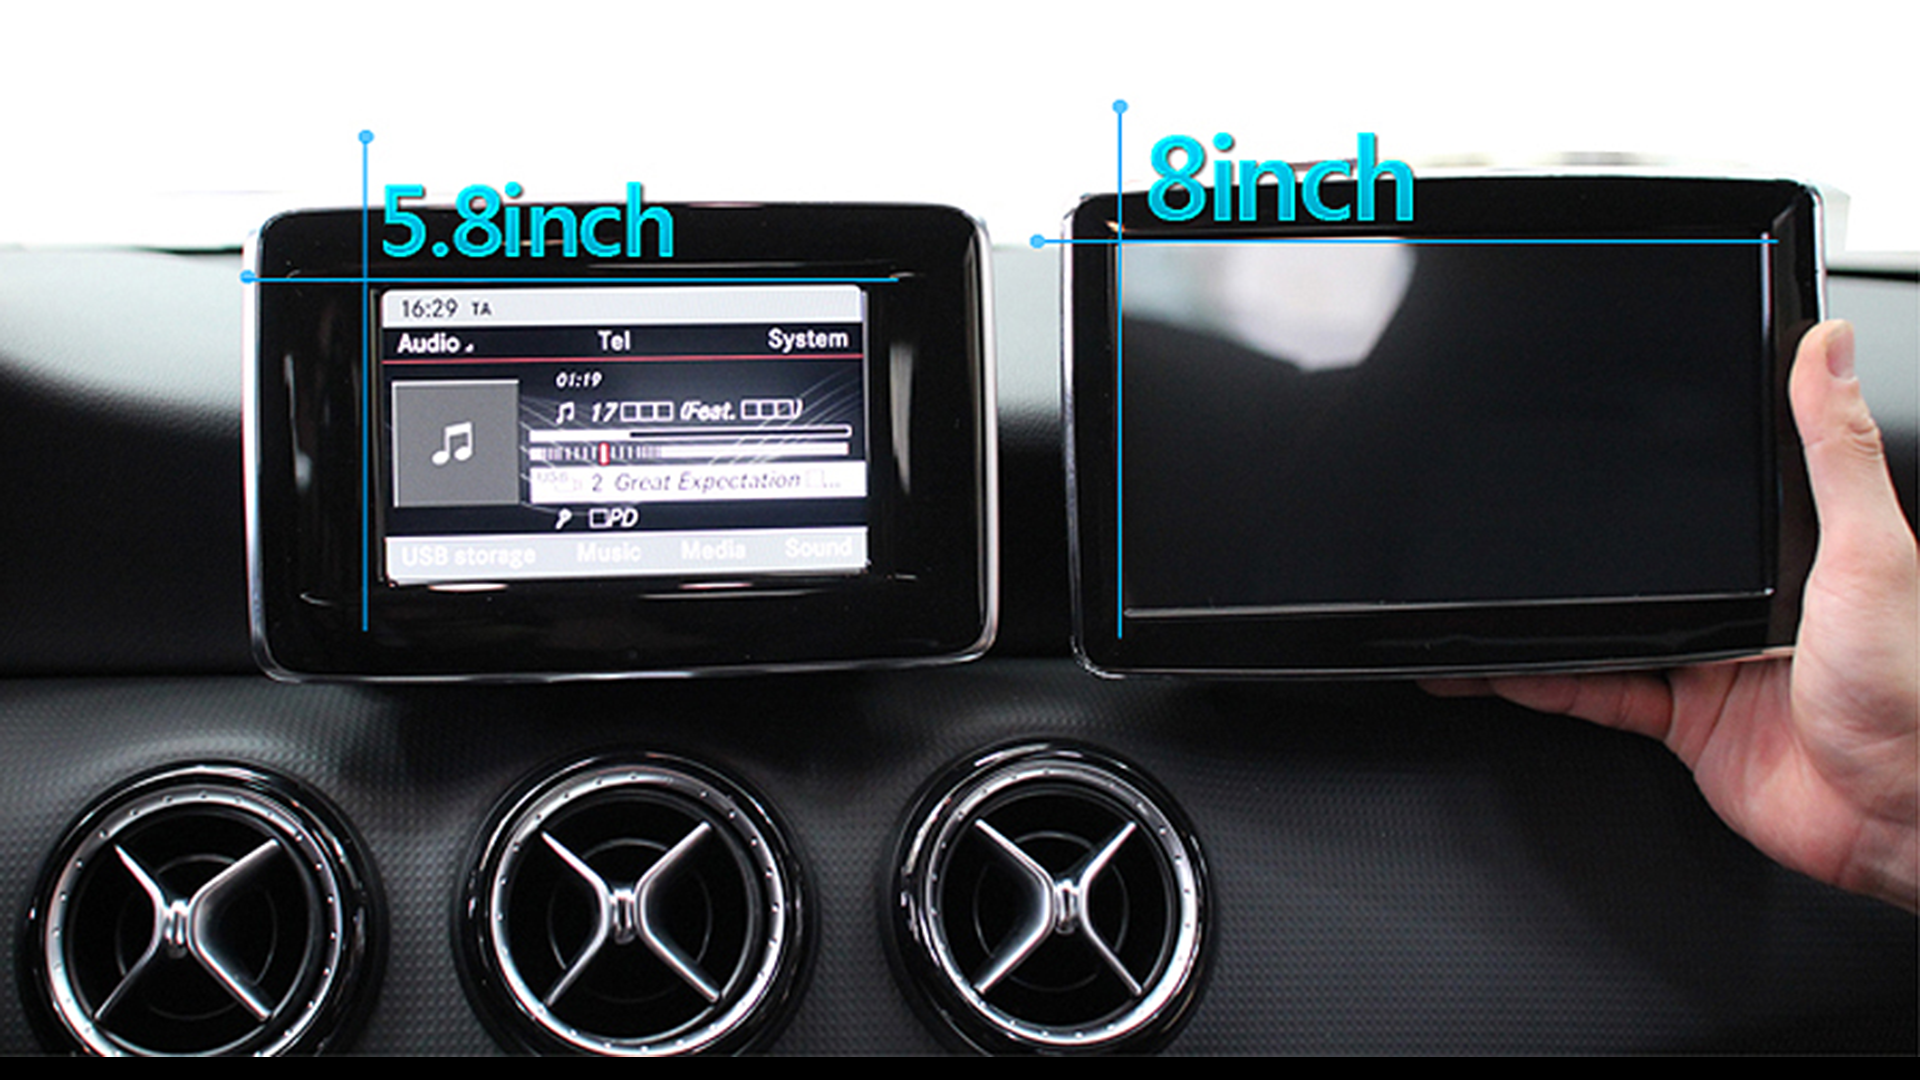 Mercedes benz ntg 4 7 navigation gps map update naviplus for Mercedes benz navigation update